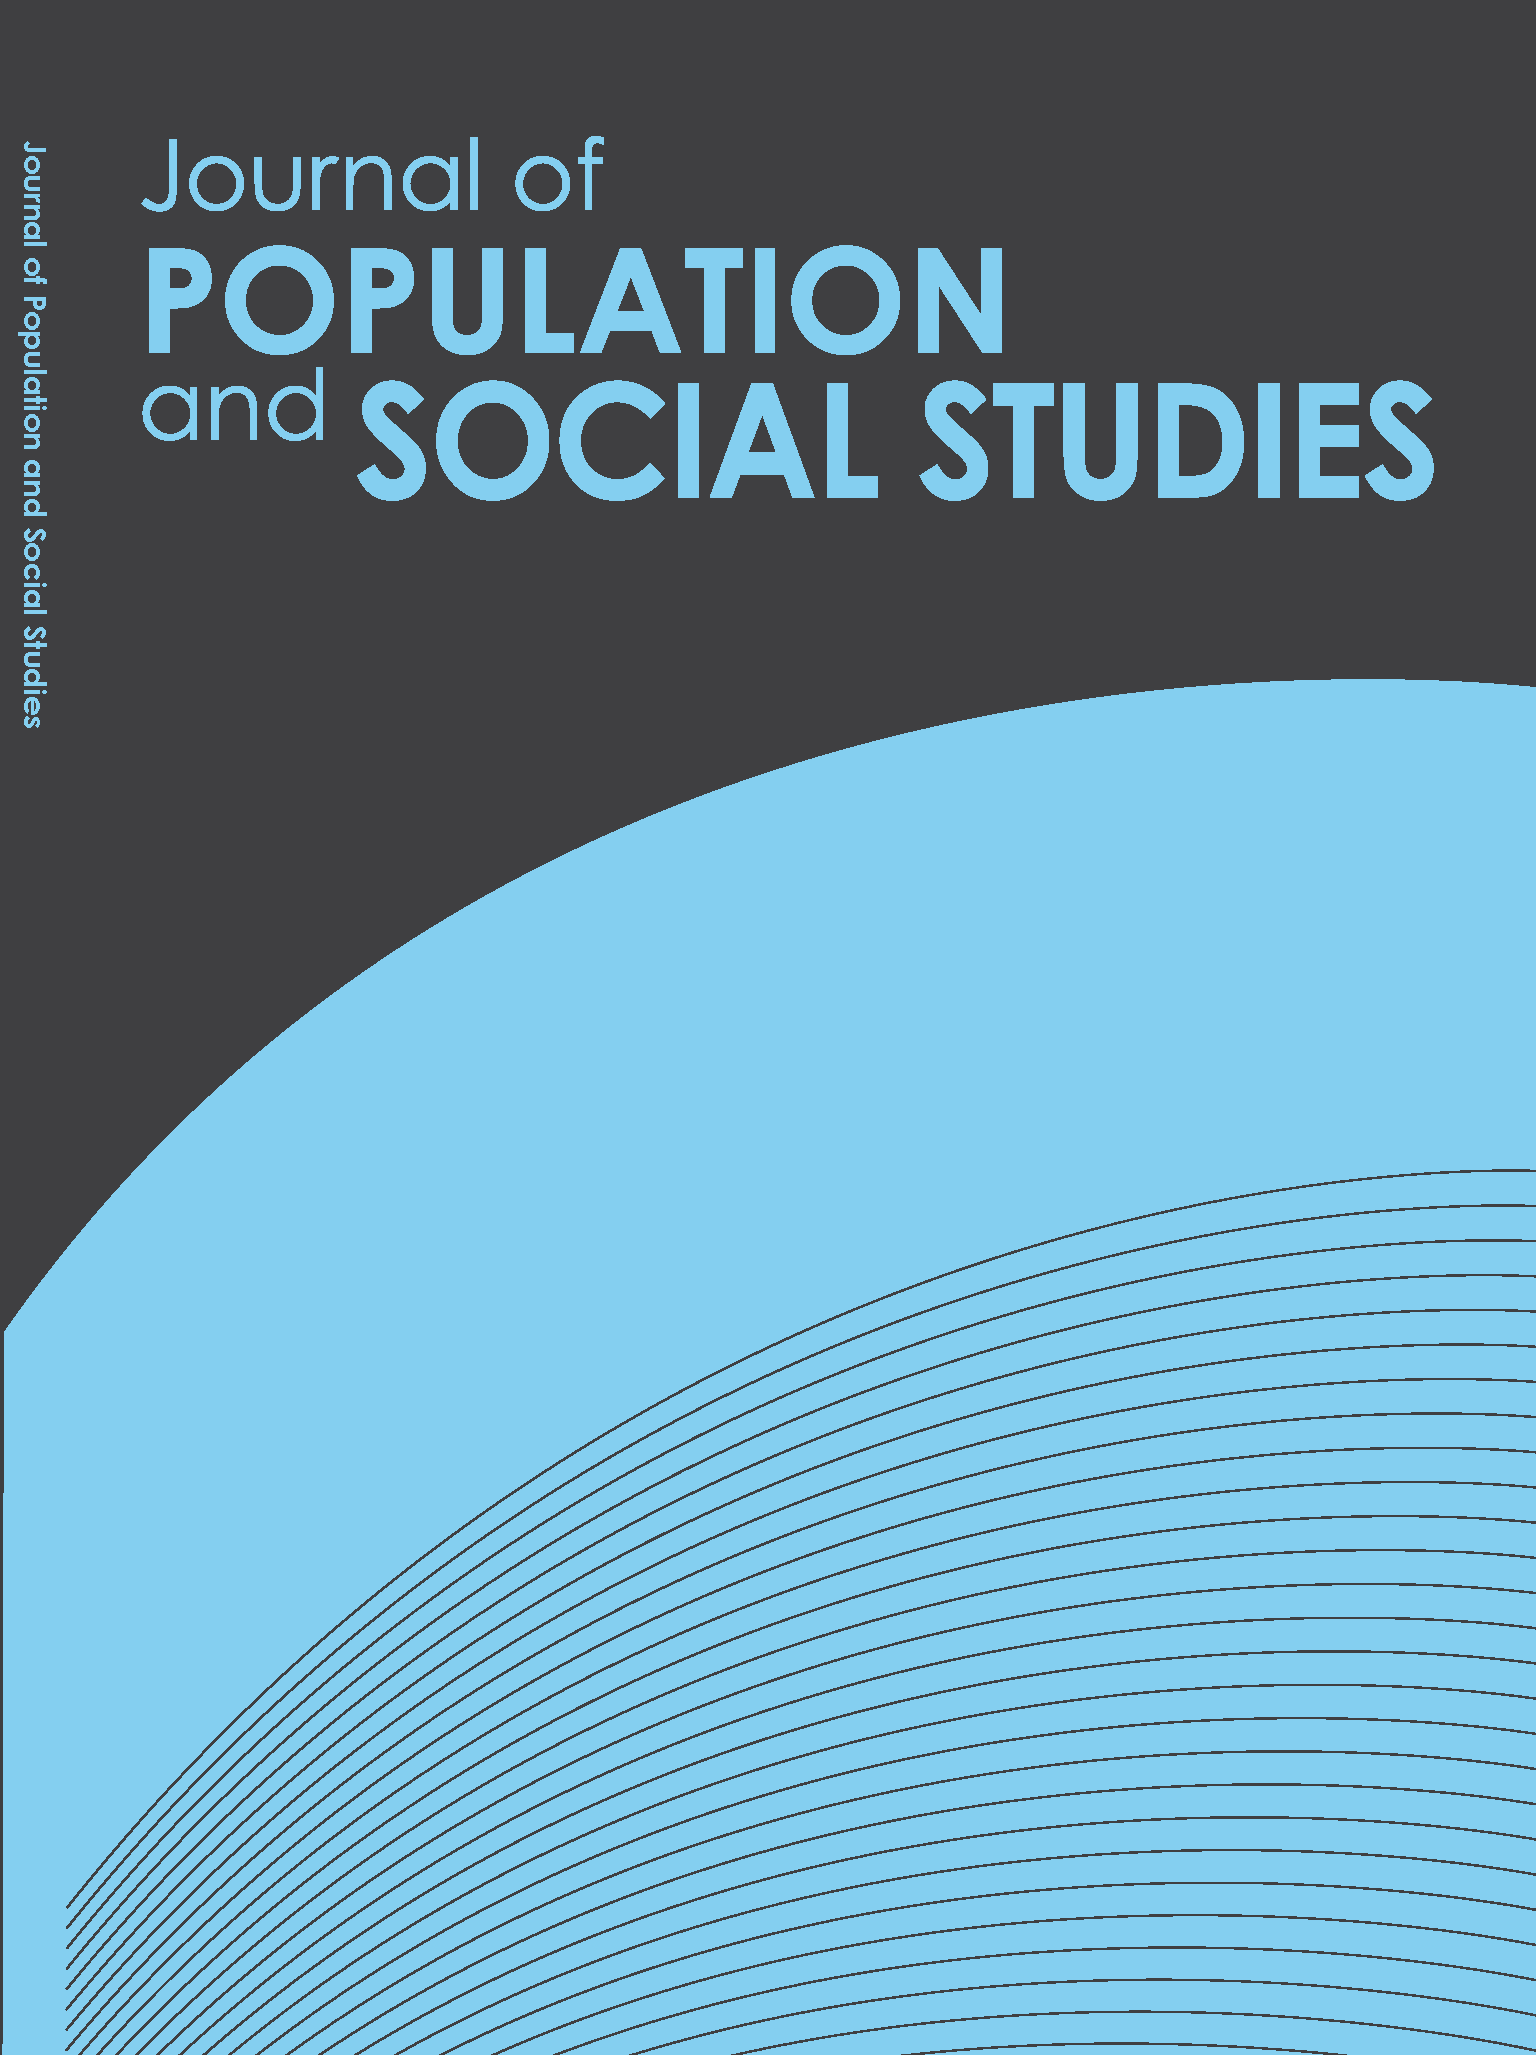 Intergenerational Patterns of Early Marriage and Childbearing in Rural  Central Java, Indonesia | Journal of Population and Social Studies [JPSS]